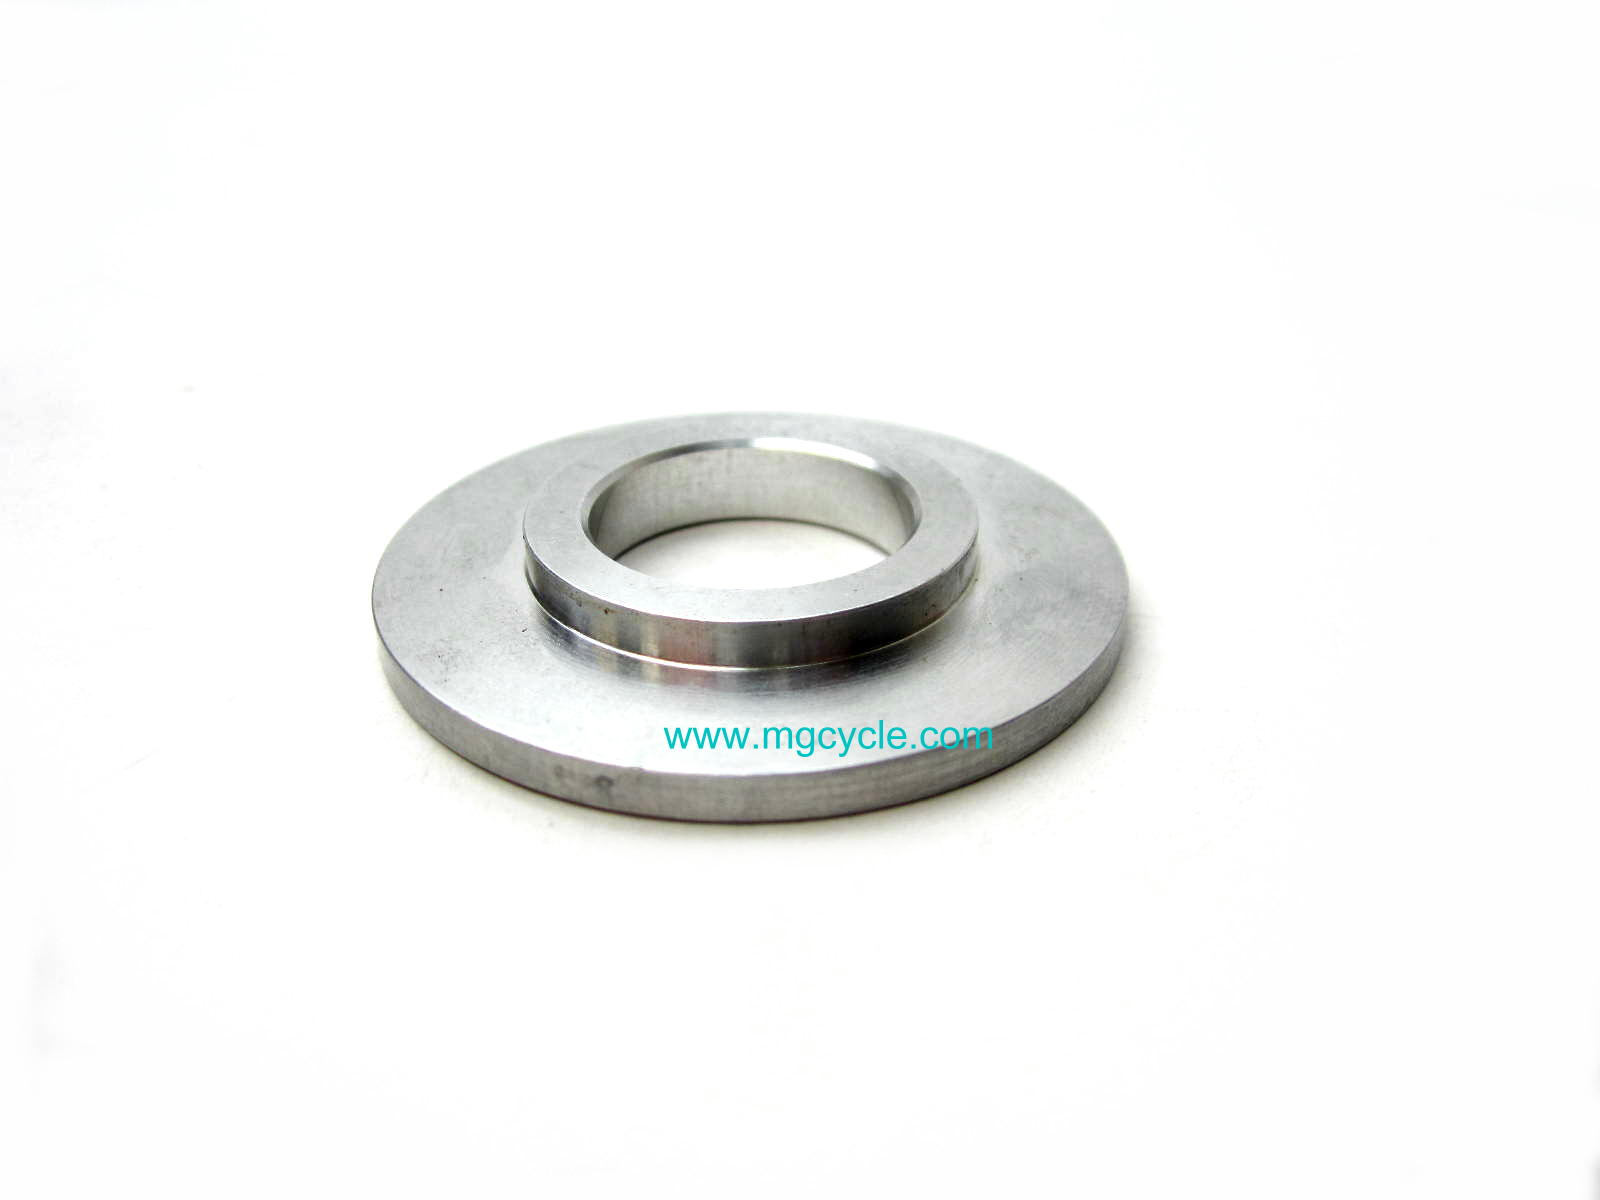 Axle spacer, between bearing and caliper carrier, T3 G5 Convert